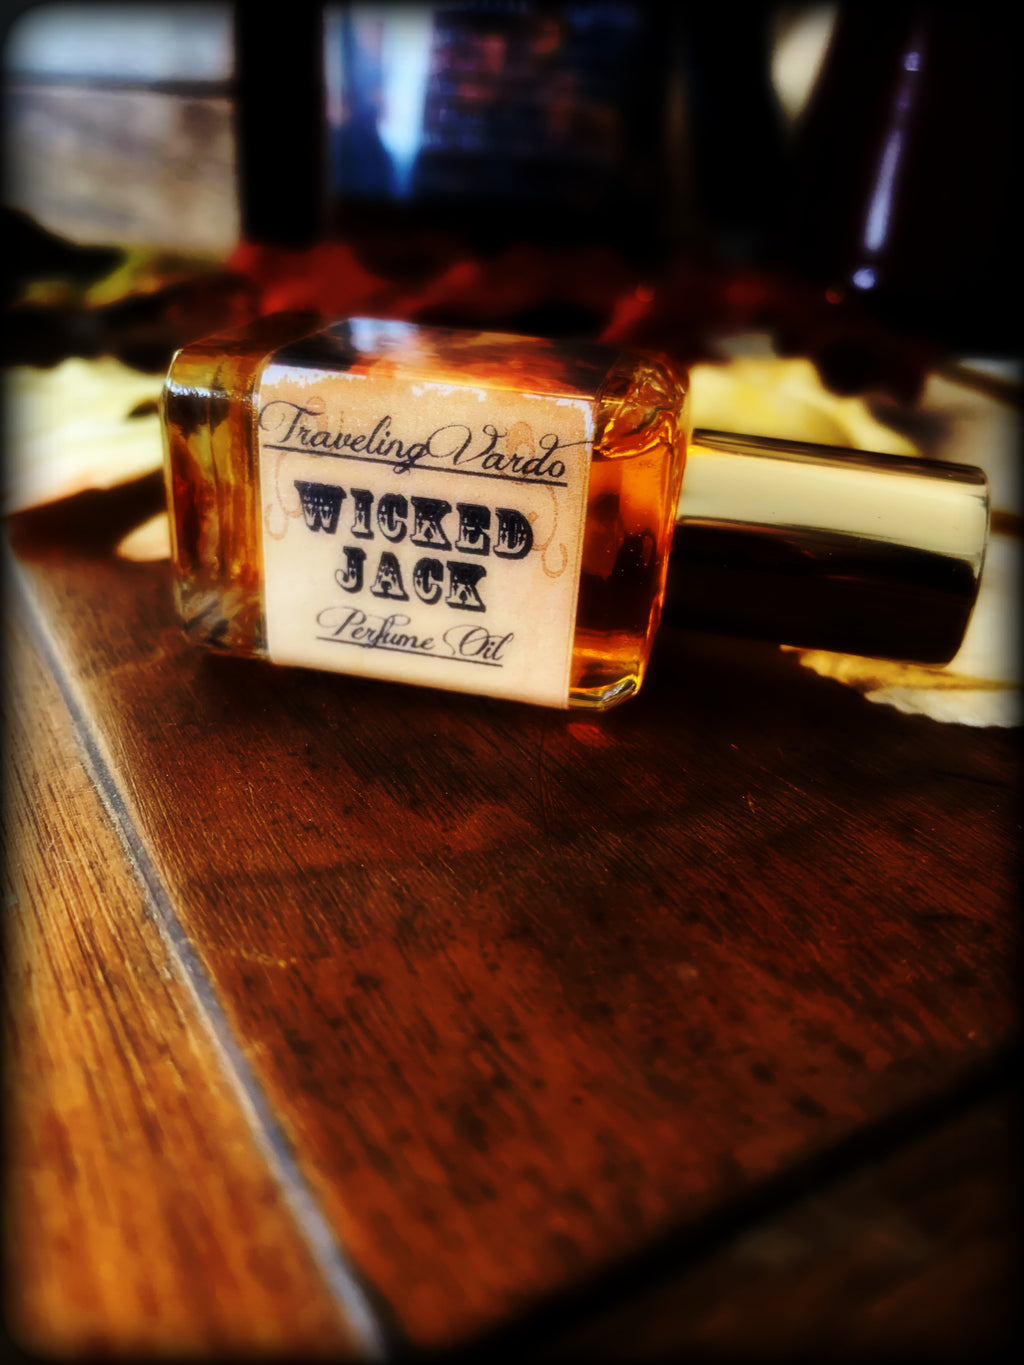 WICKED JACK PERFUME OIL ~ Seasonal Release ~ Pumpkin Blood Orange Ginger Cloves Vanilla Cream Caramelized Sugar